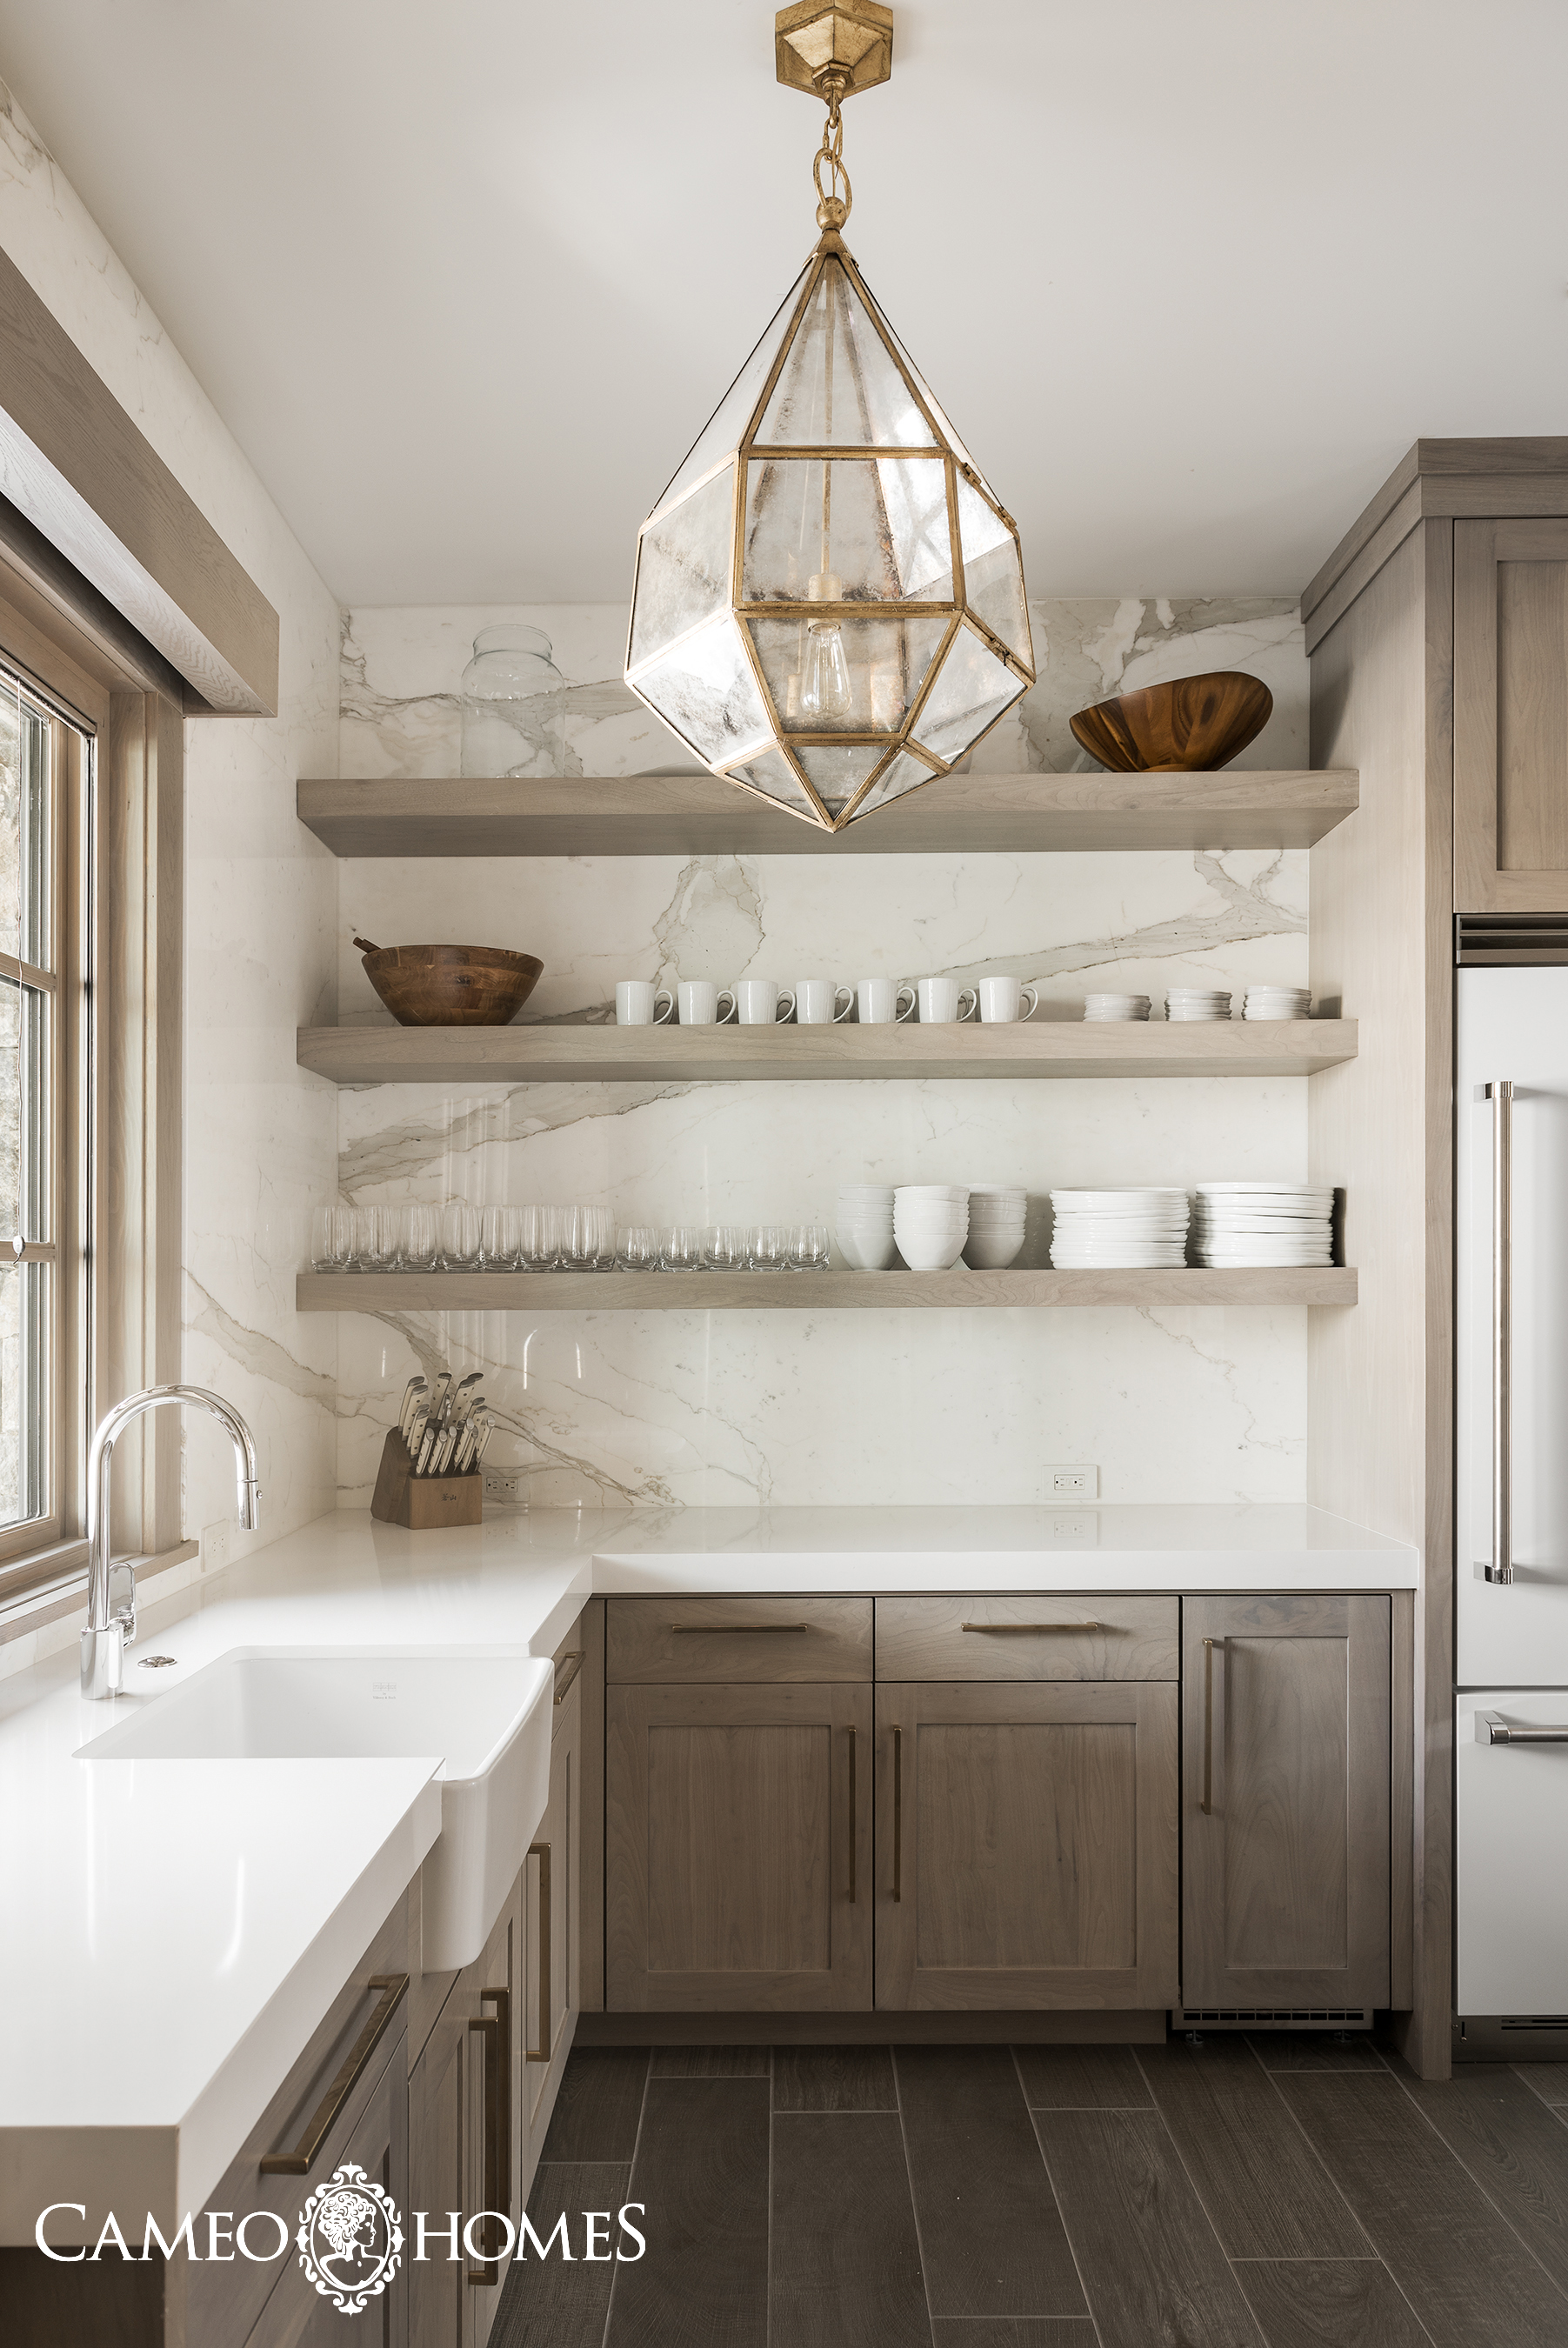 Butler S Pantry Fit For A King Cameo Homes